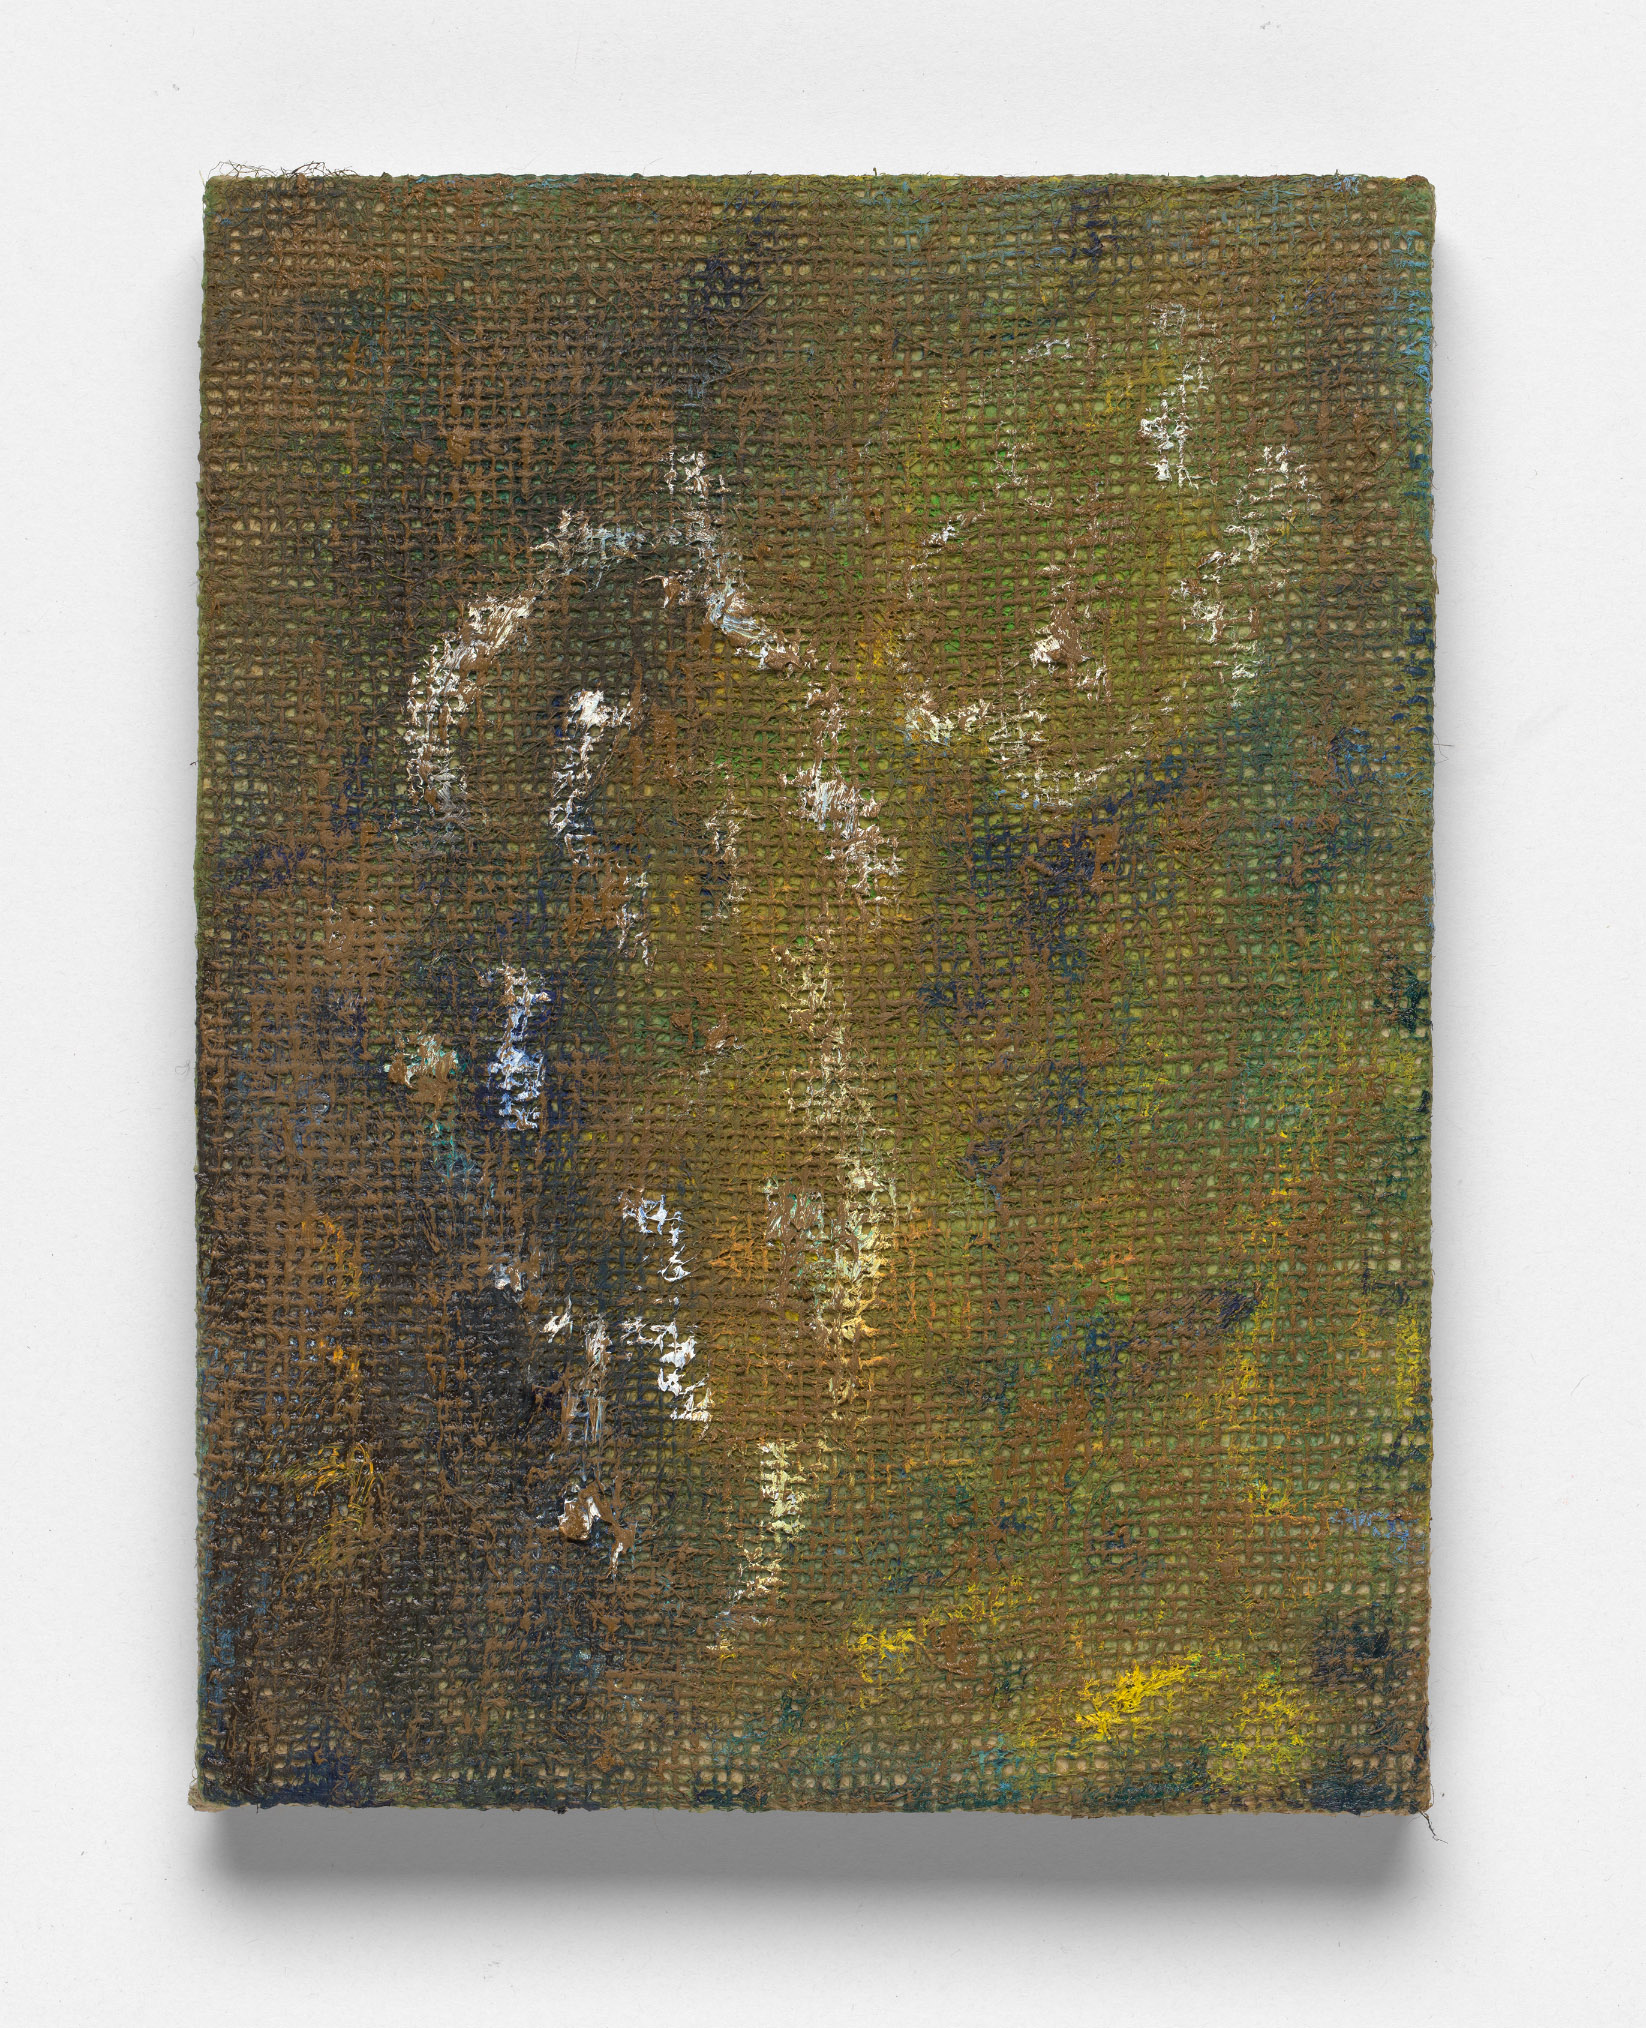 After L'Été 5, Oil on Hessian on Board, 30 x 23cm, 2019. Photograph by Matthew Stanton.